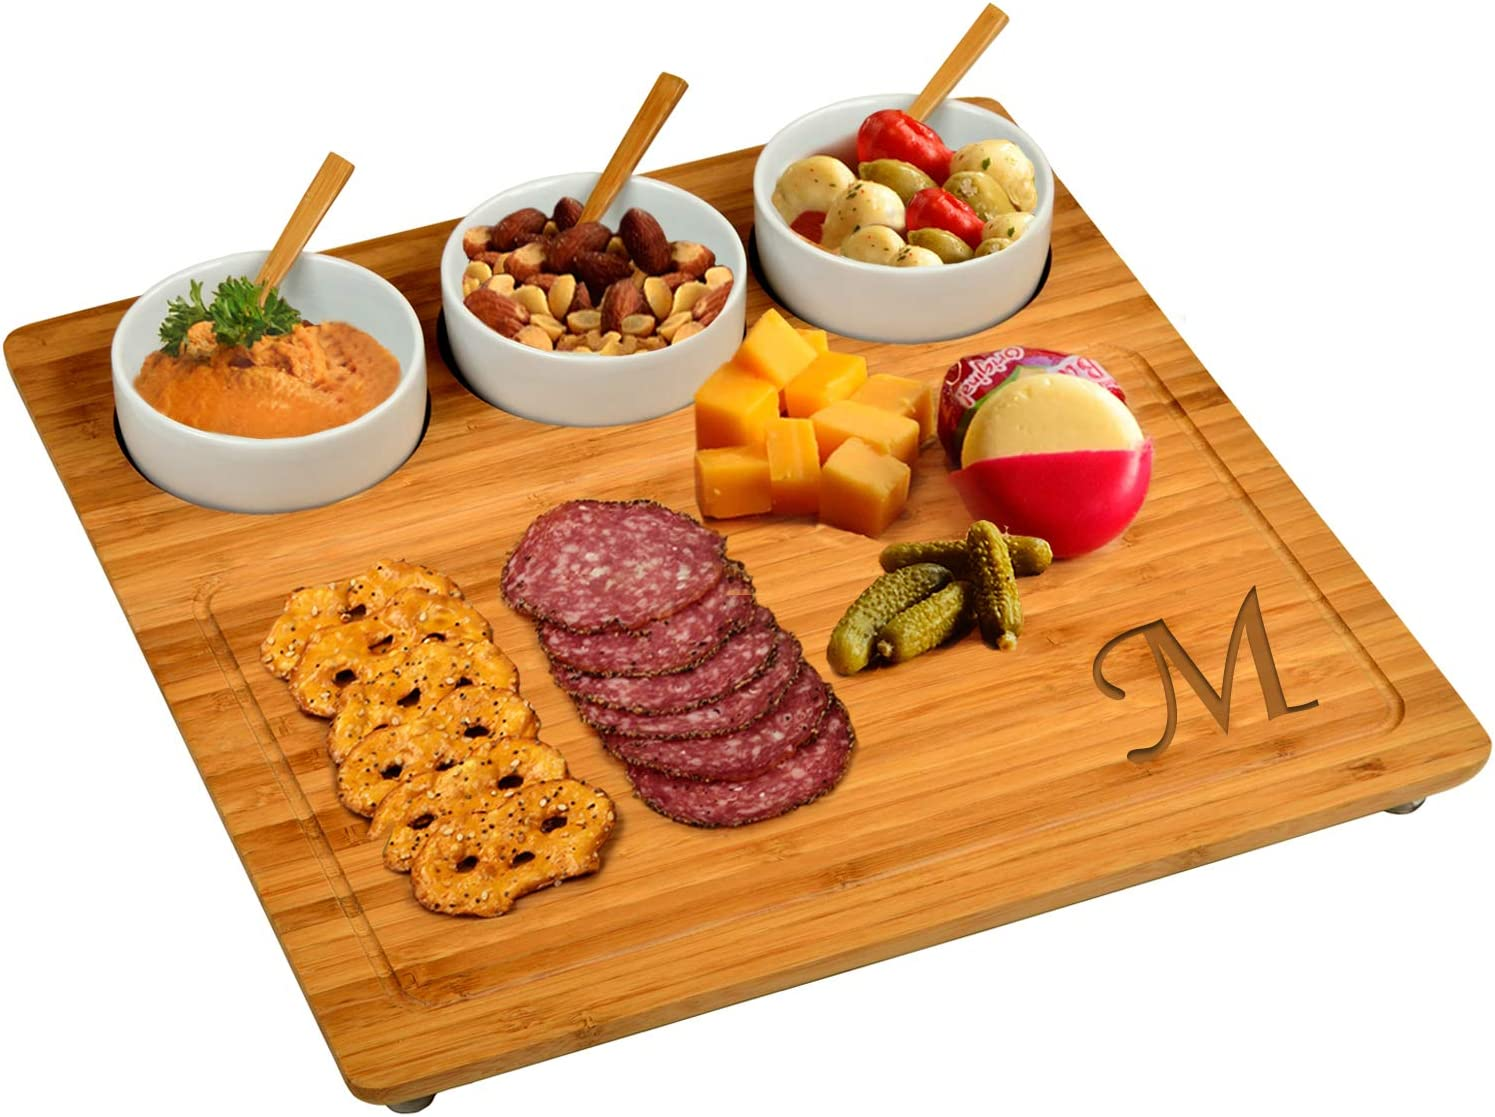 Picnic at Ascot Original Personalized Monogrammed Engraved Bamboo Cutting Board for Cheese & Charcuterie with 3 Ceramic Bowls & Bamboo Spoons- Designed & Quality Checked in the USA